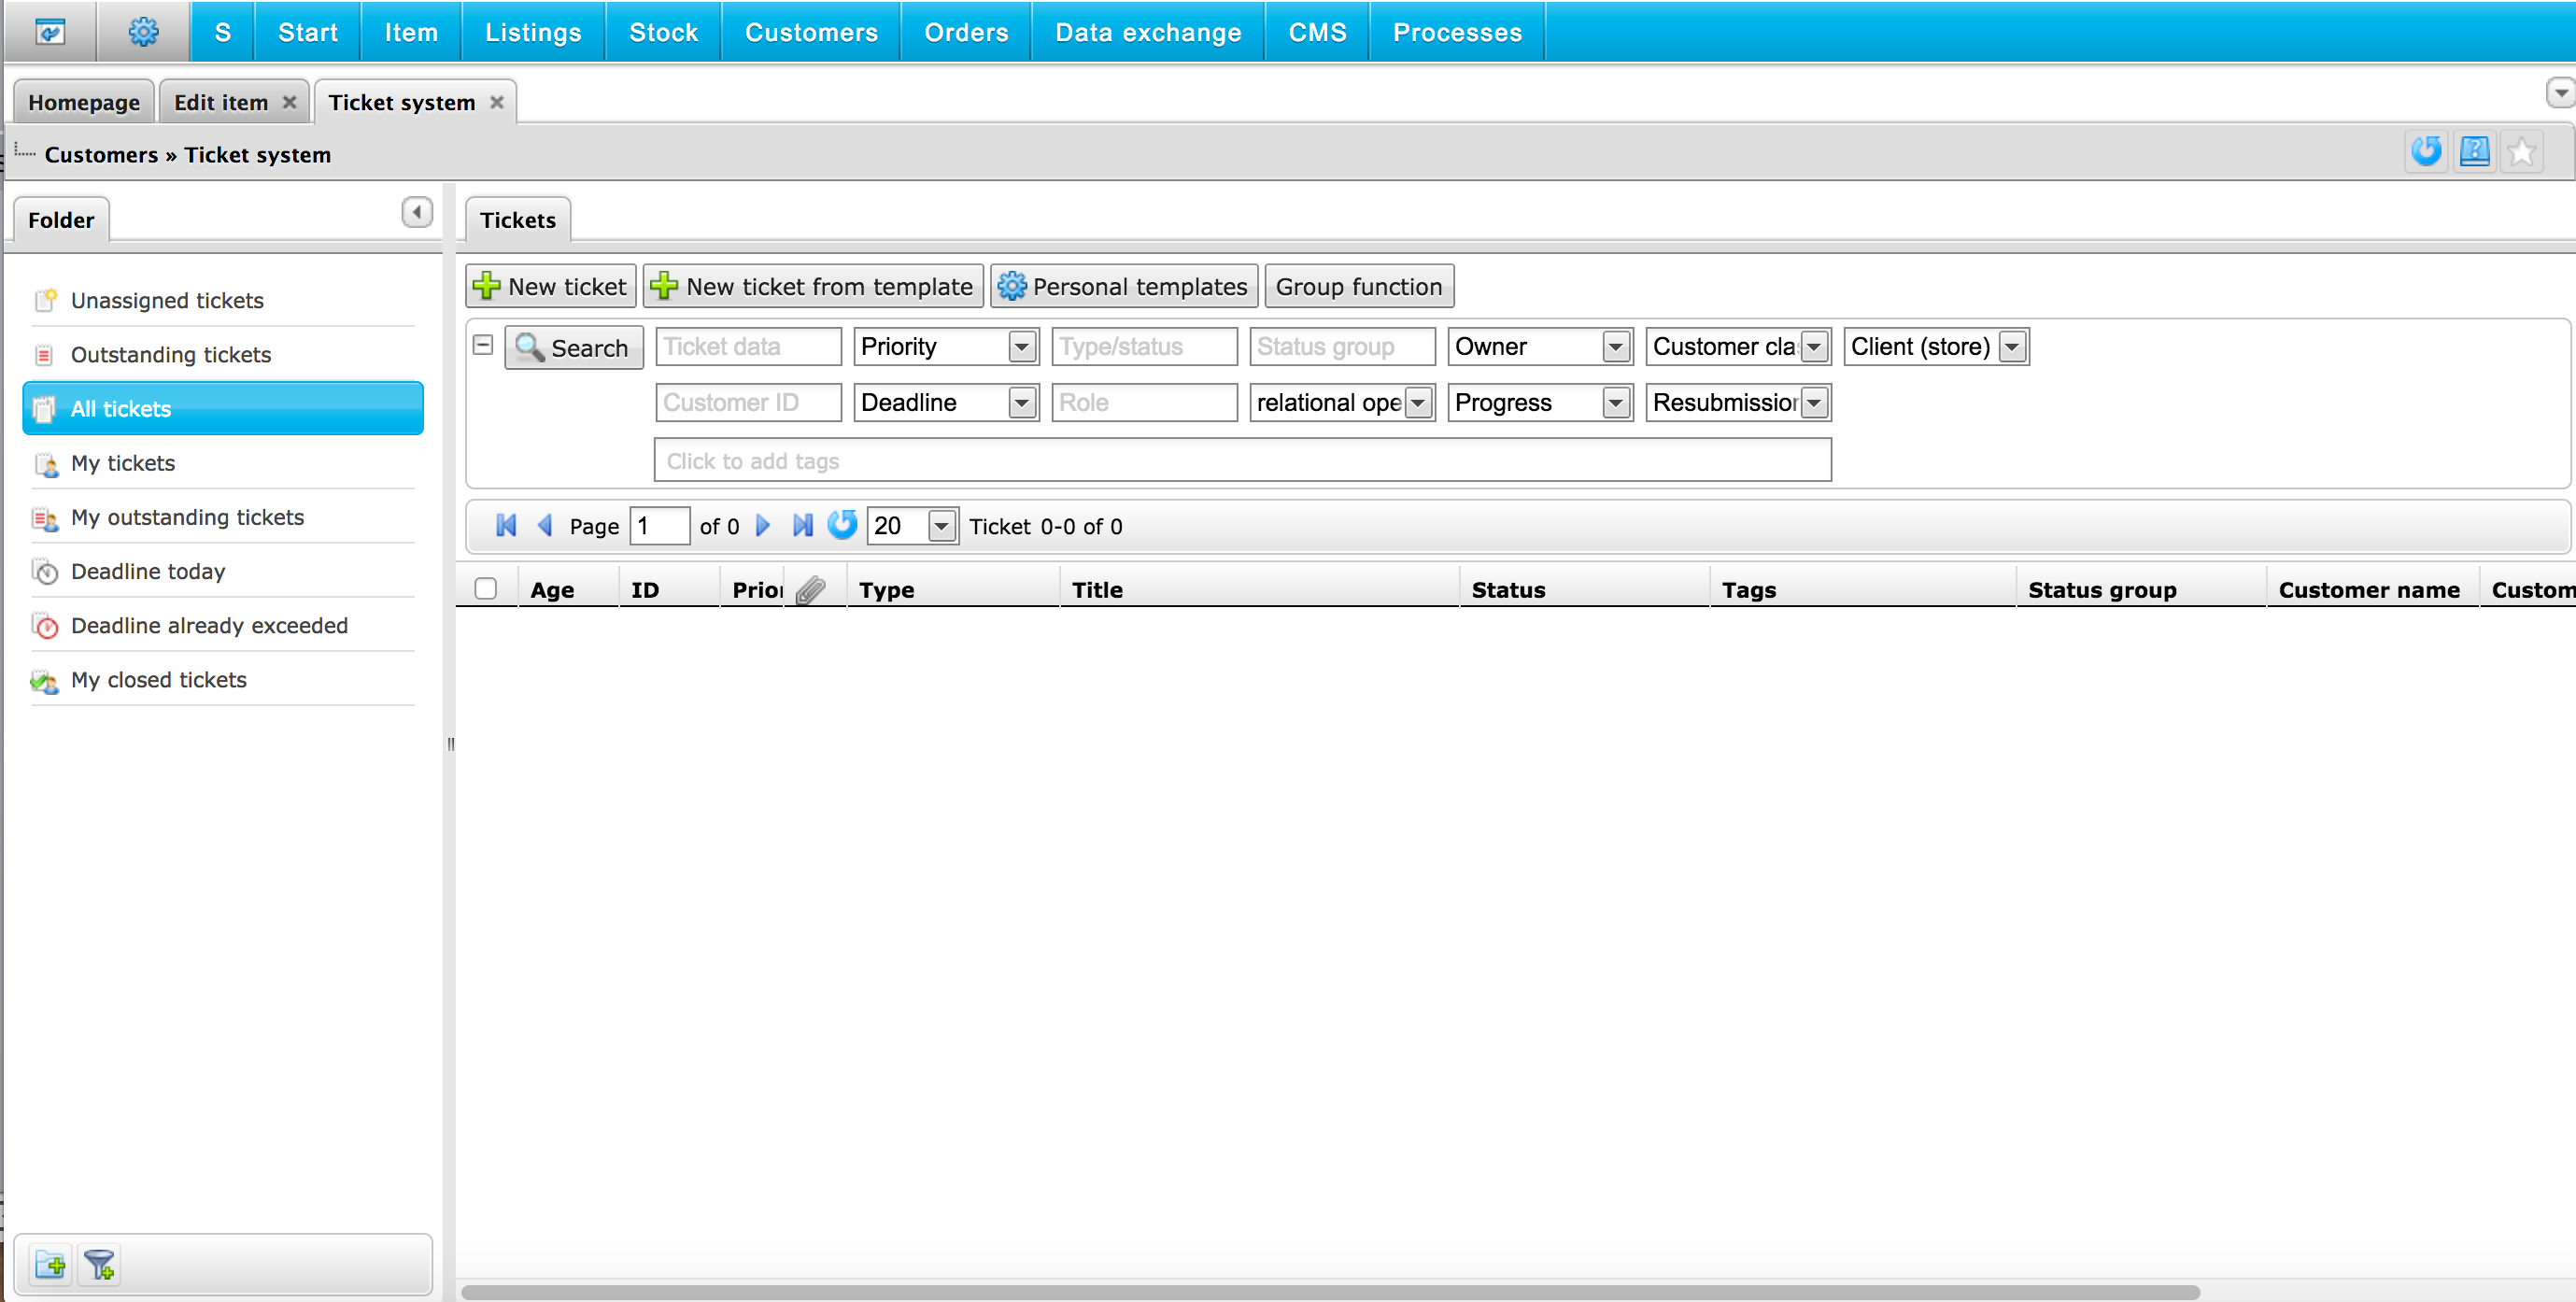 PlentymarketsUk crm tool